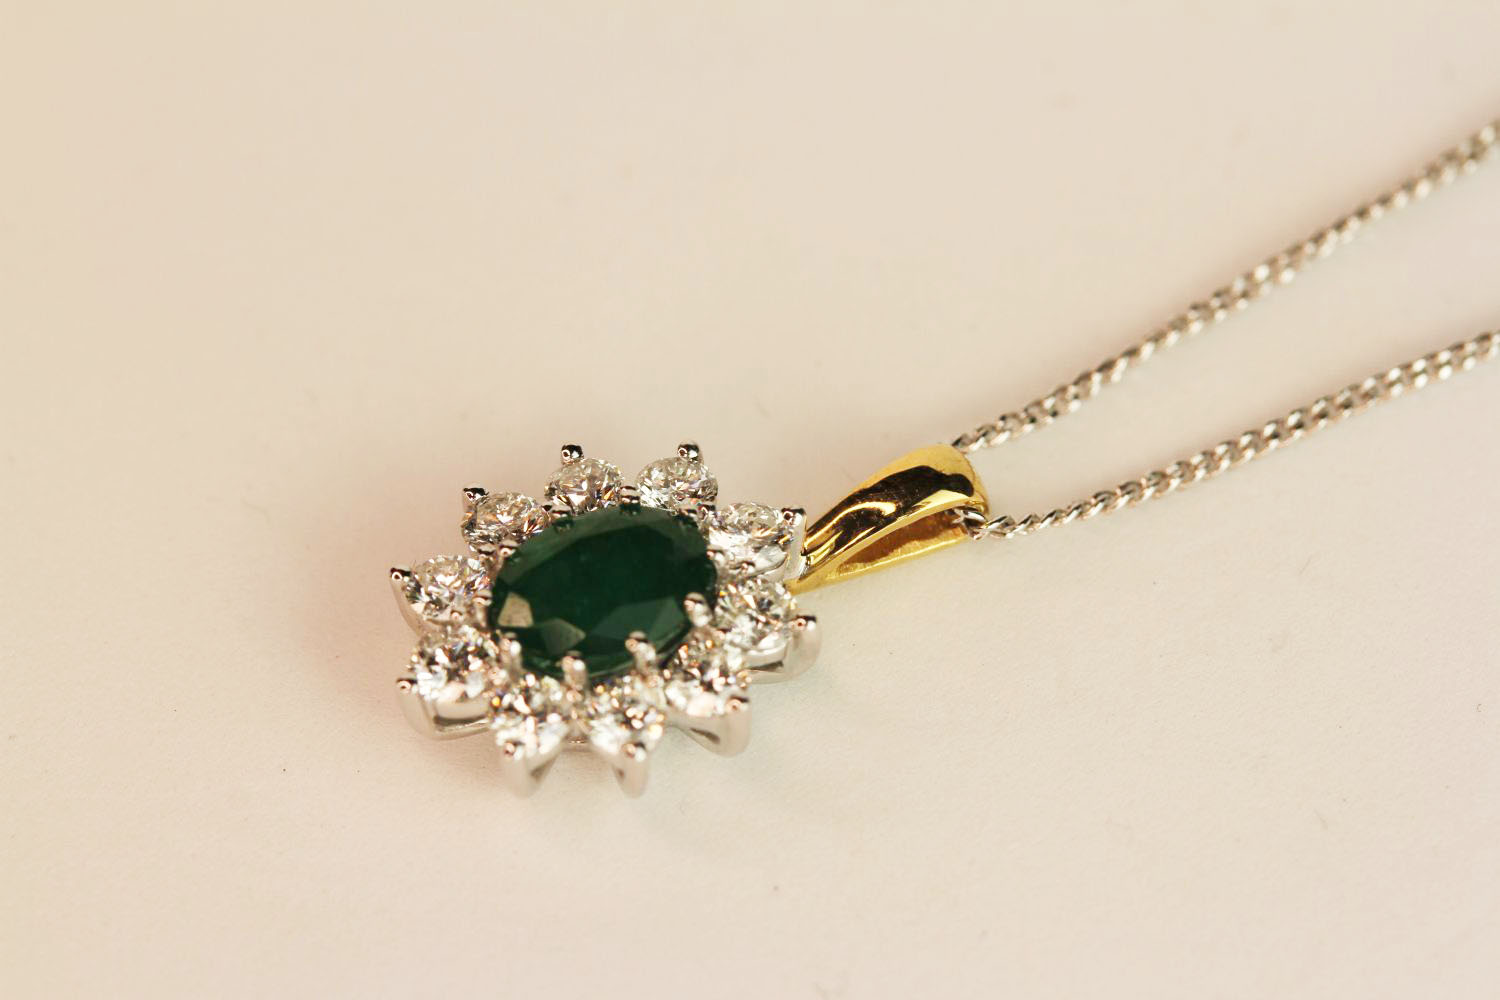 18ct white and yellow gold oval emerald and diamond cluster pendant on a silver chain, boxed. - Image 2 of 4